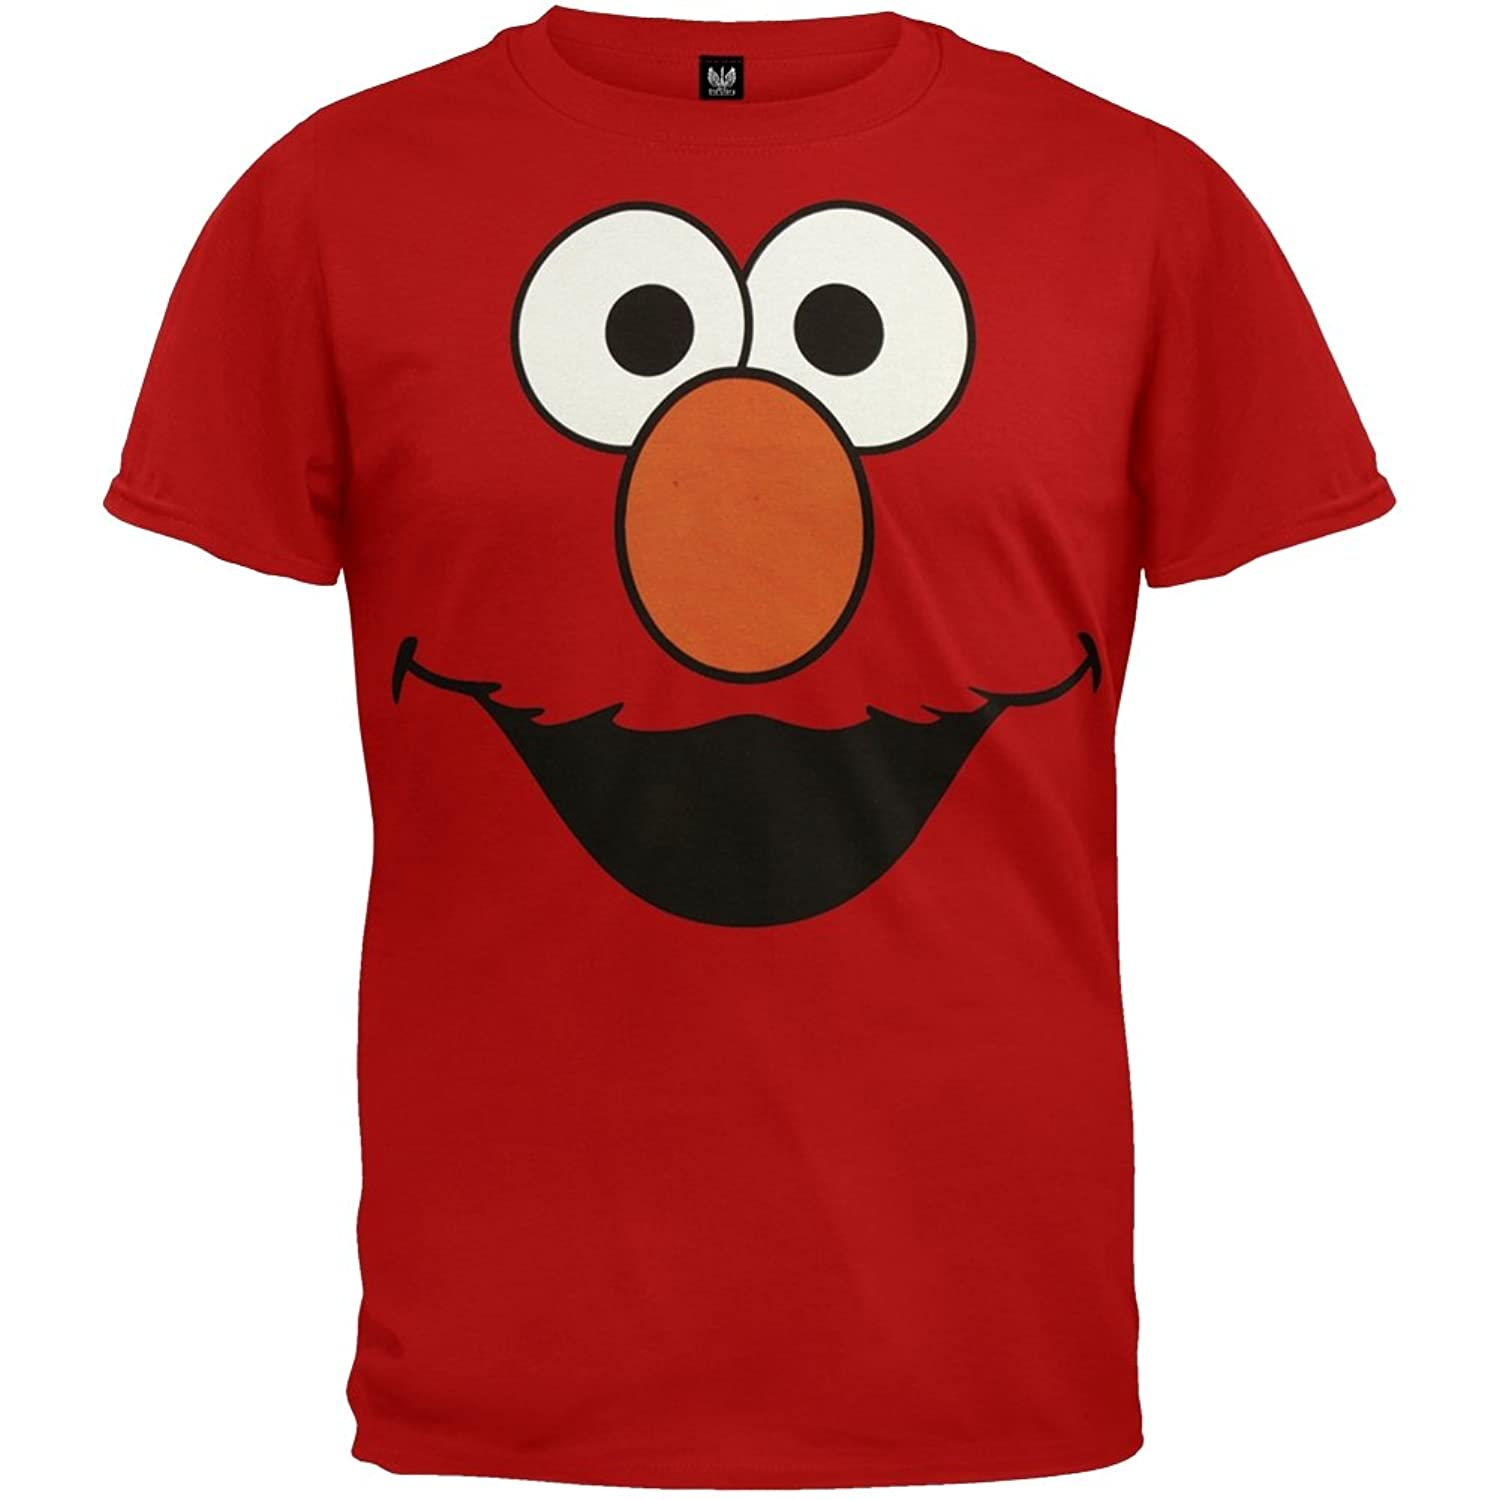 Cookie monster adult t shirt nude movies